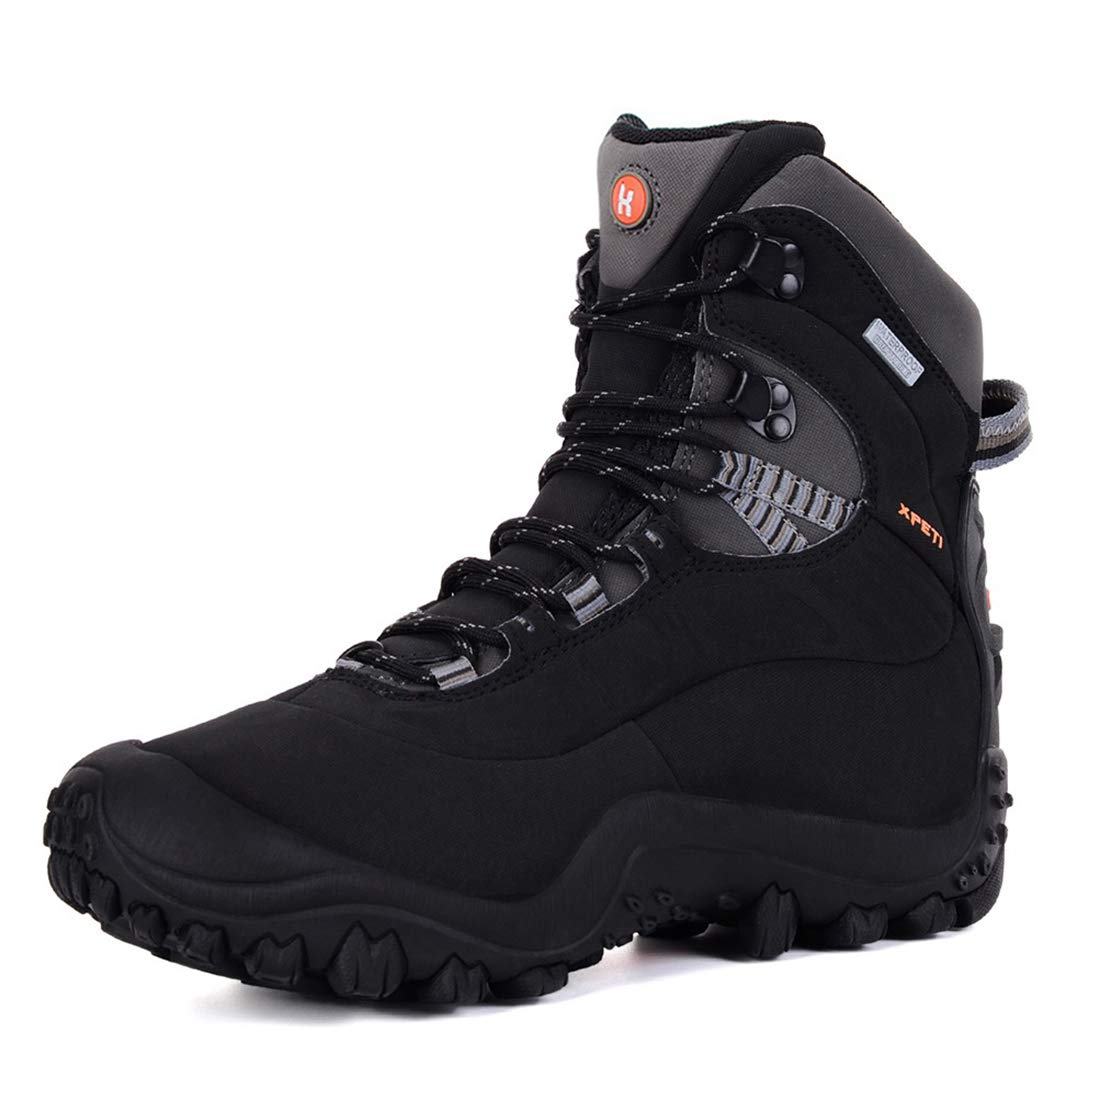 XPETI Women's Thermator Mid High-Top Waterproof Hiking Boot Trekking Hunting Outdoor Antiskid All-Weather Protection Black 9 by XPETI